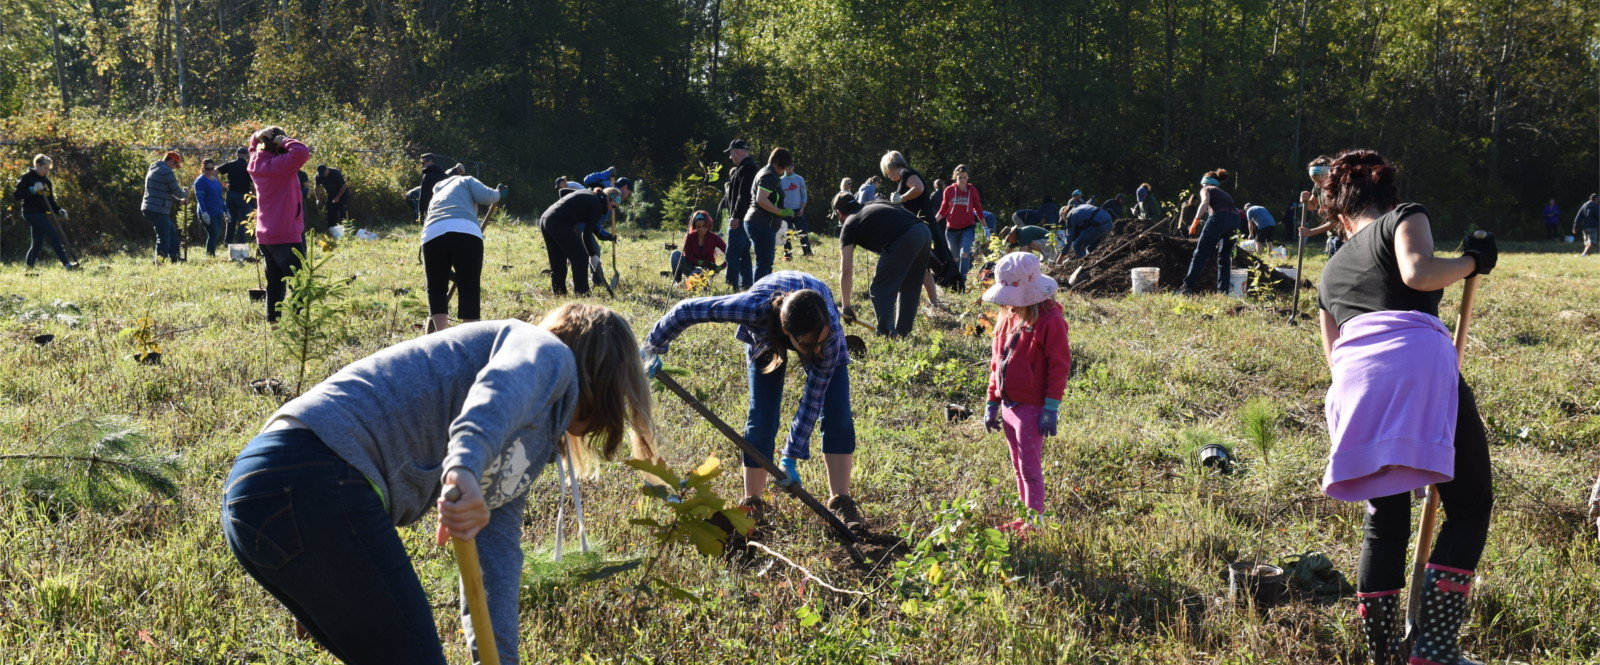 people planting trees in a field